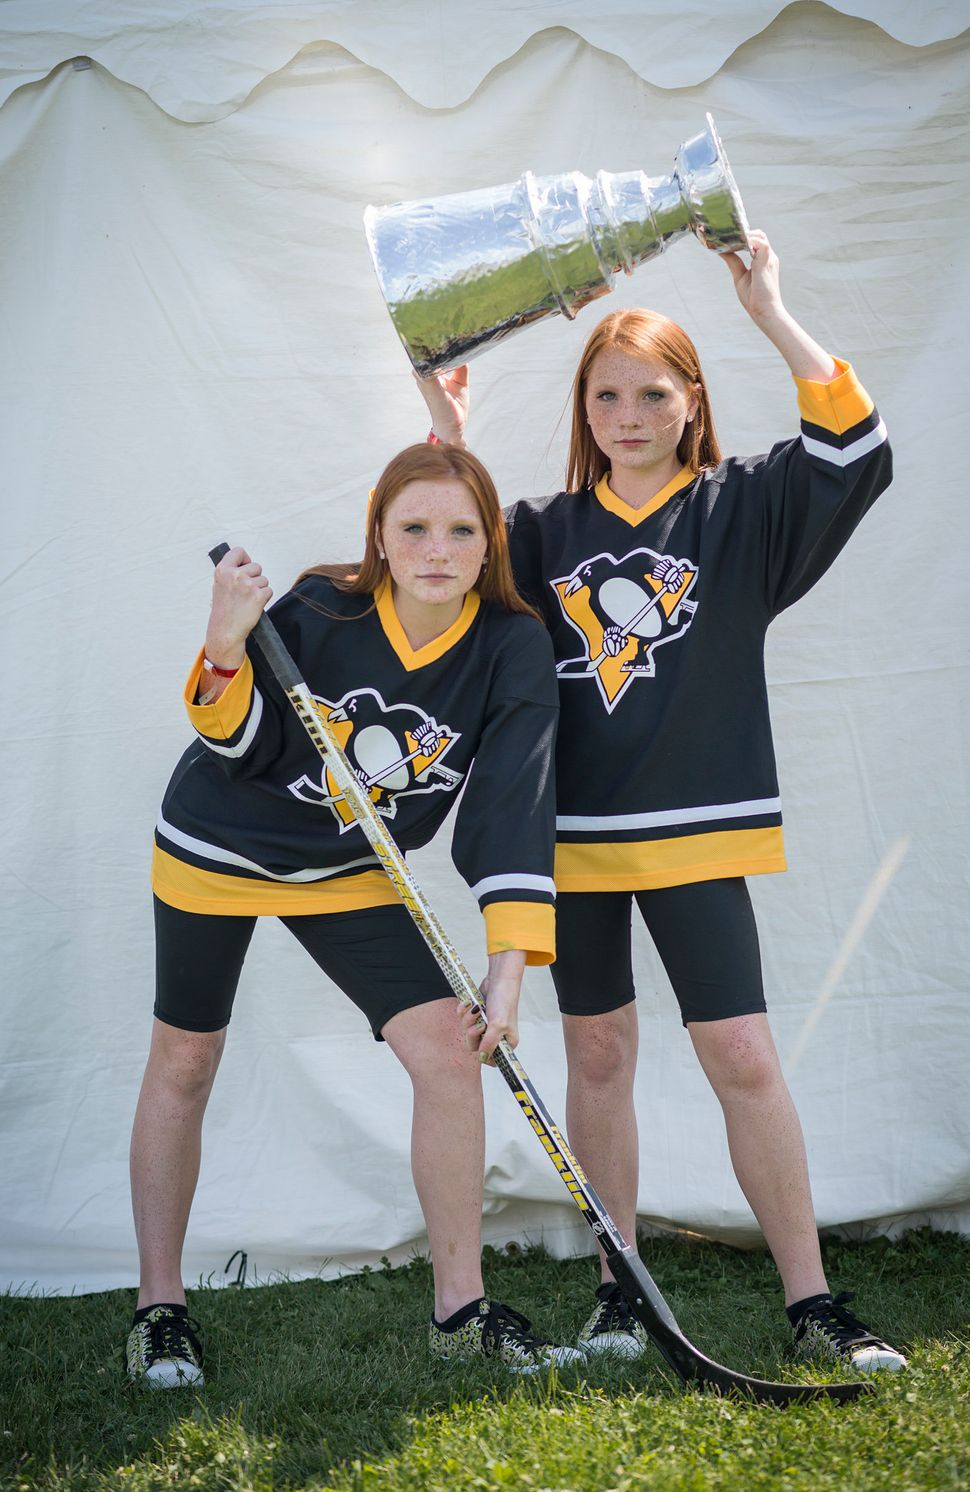 Kyleigh (left) and Ryleigh cheer the Pittsburgh Penguins' back-to-back Stanley Cup wins.